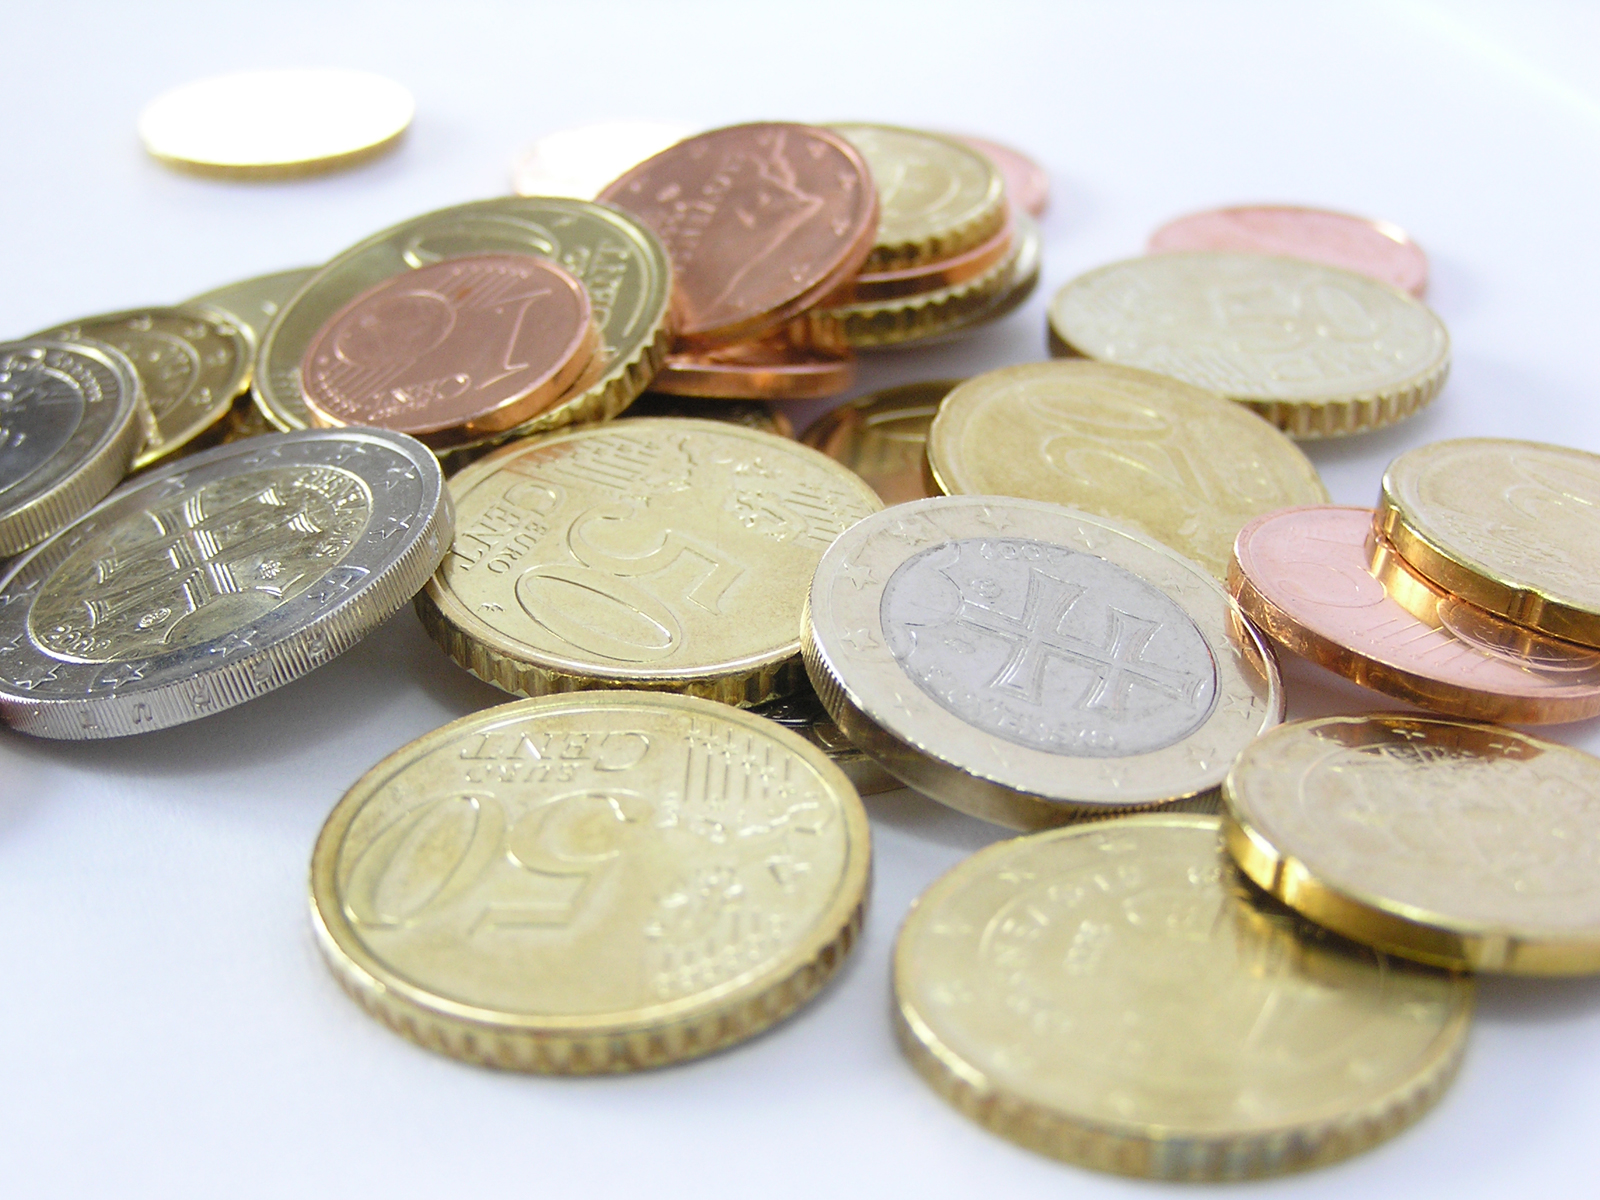 FDI in Bulgaria plummeted at start of 2013 – official